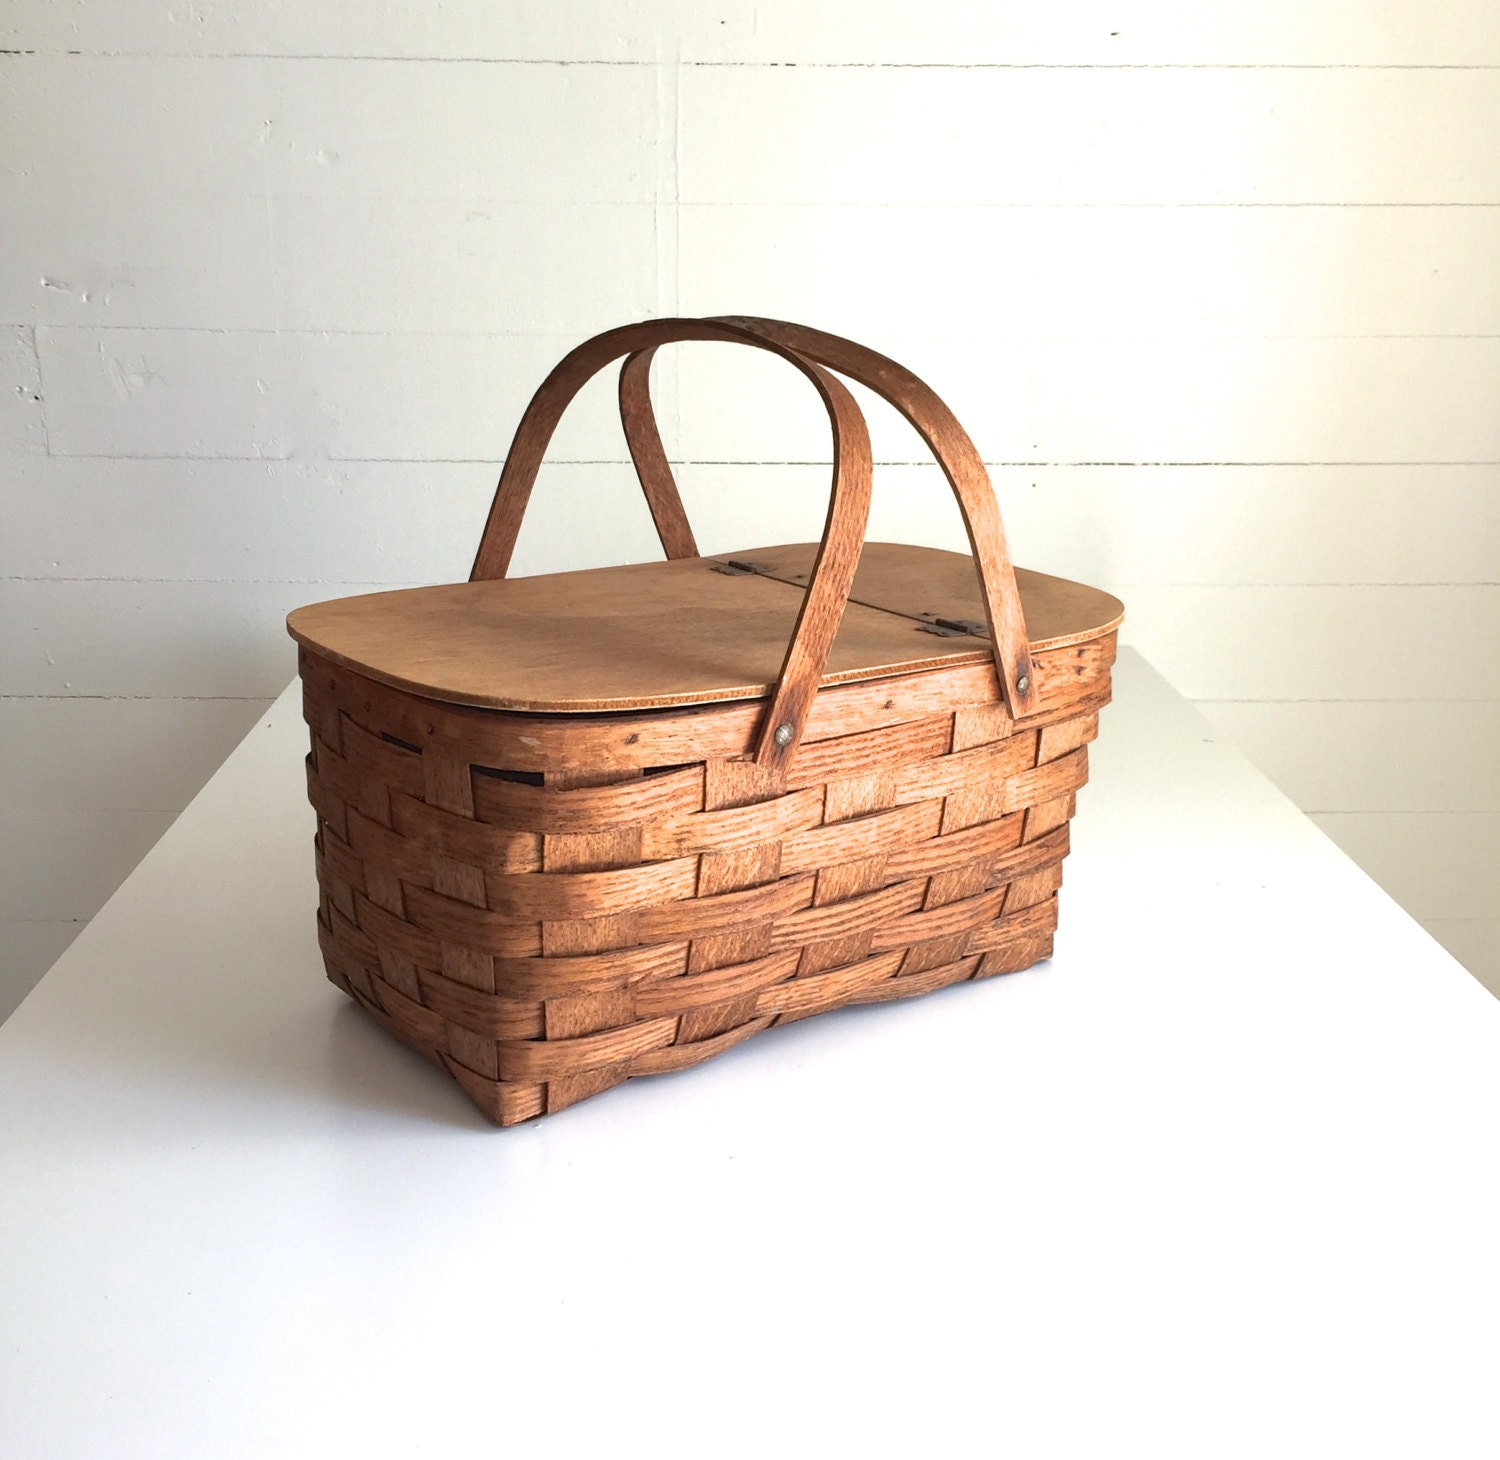 How To Weave A Cedar Basket : Vintage picnic basket wood weave wooden handles flip